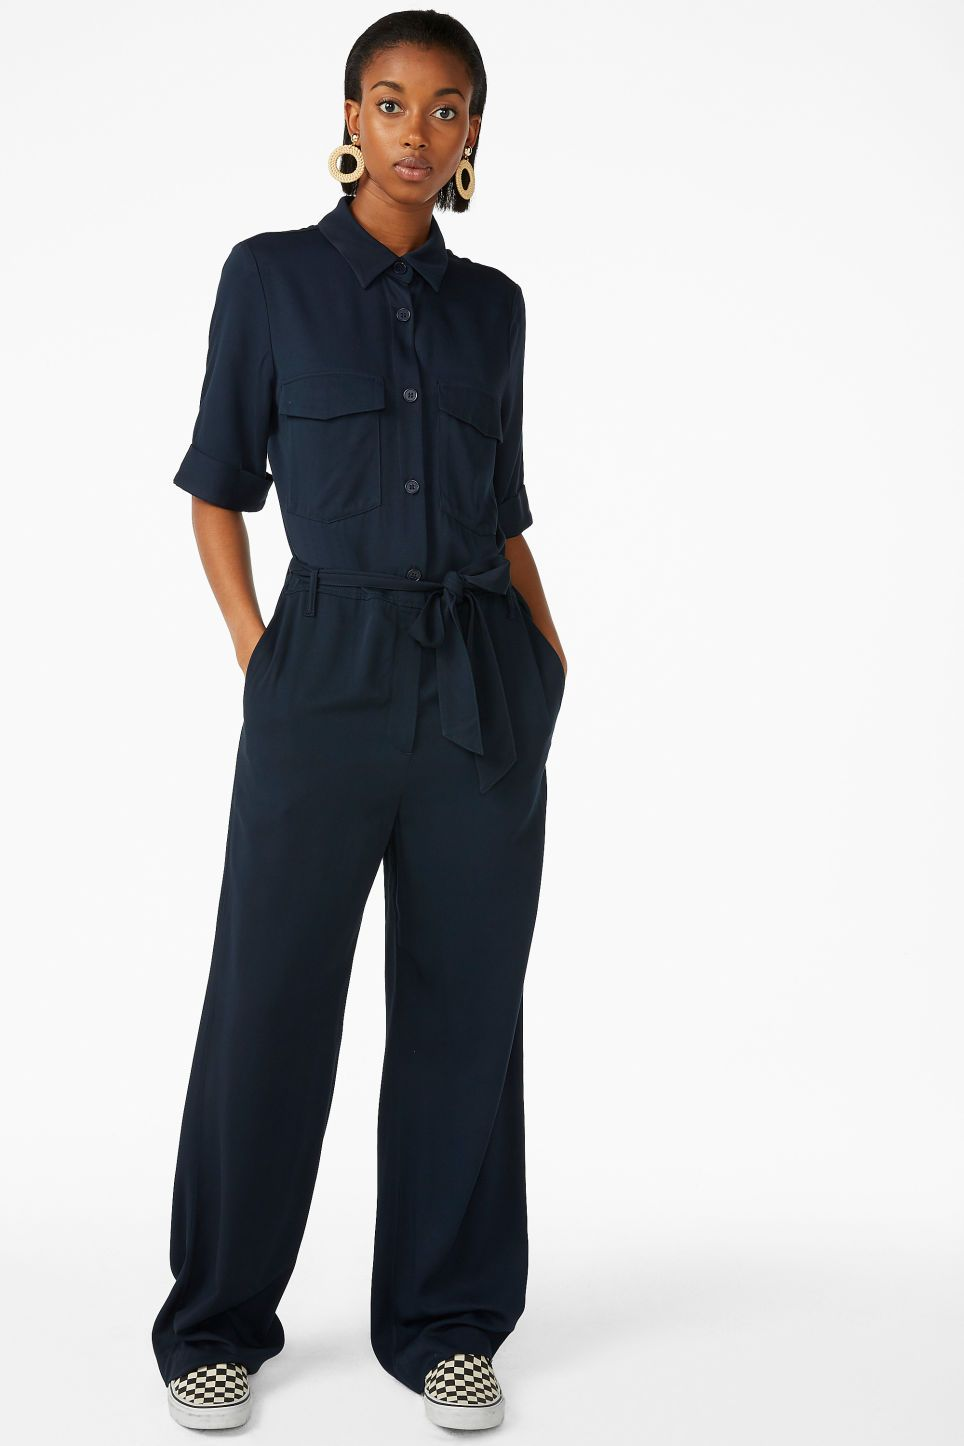 34167ef6a7 Monki tie-waist jumpsuit in blue - A belted utility jumpsuit in a midnight  blue shade with rolled up-style sleeves